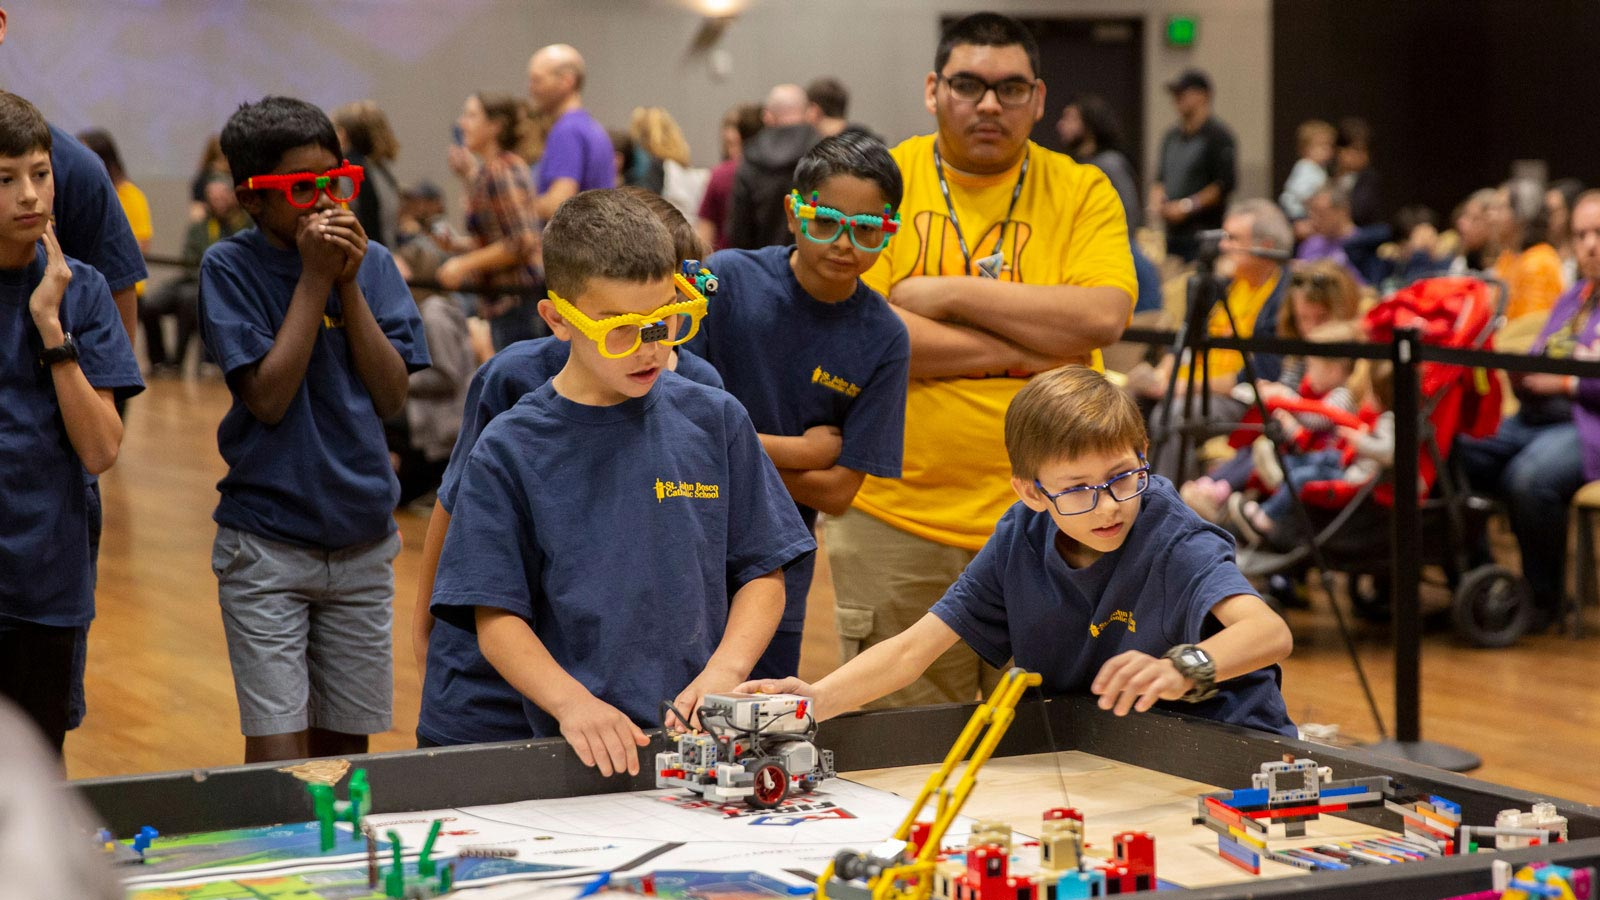 Elementary-age boys using a LEGO robot in competition.